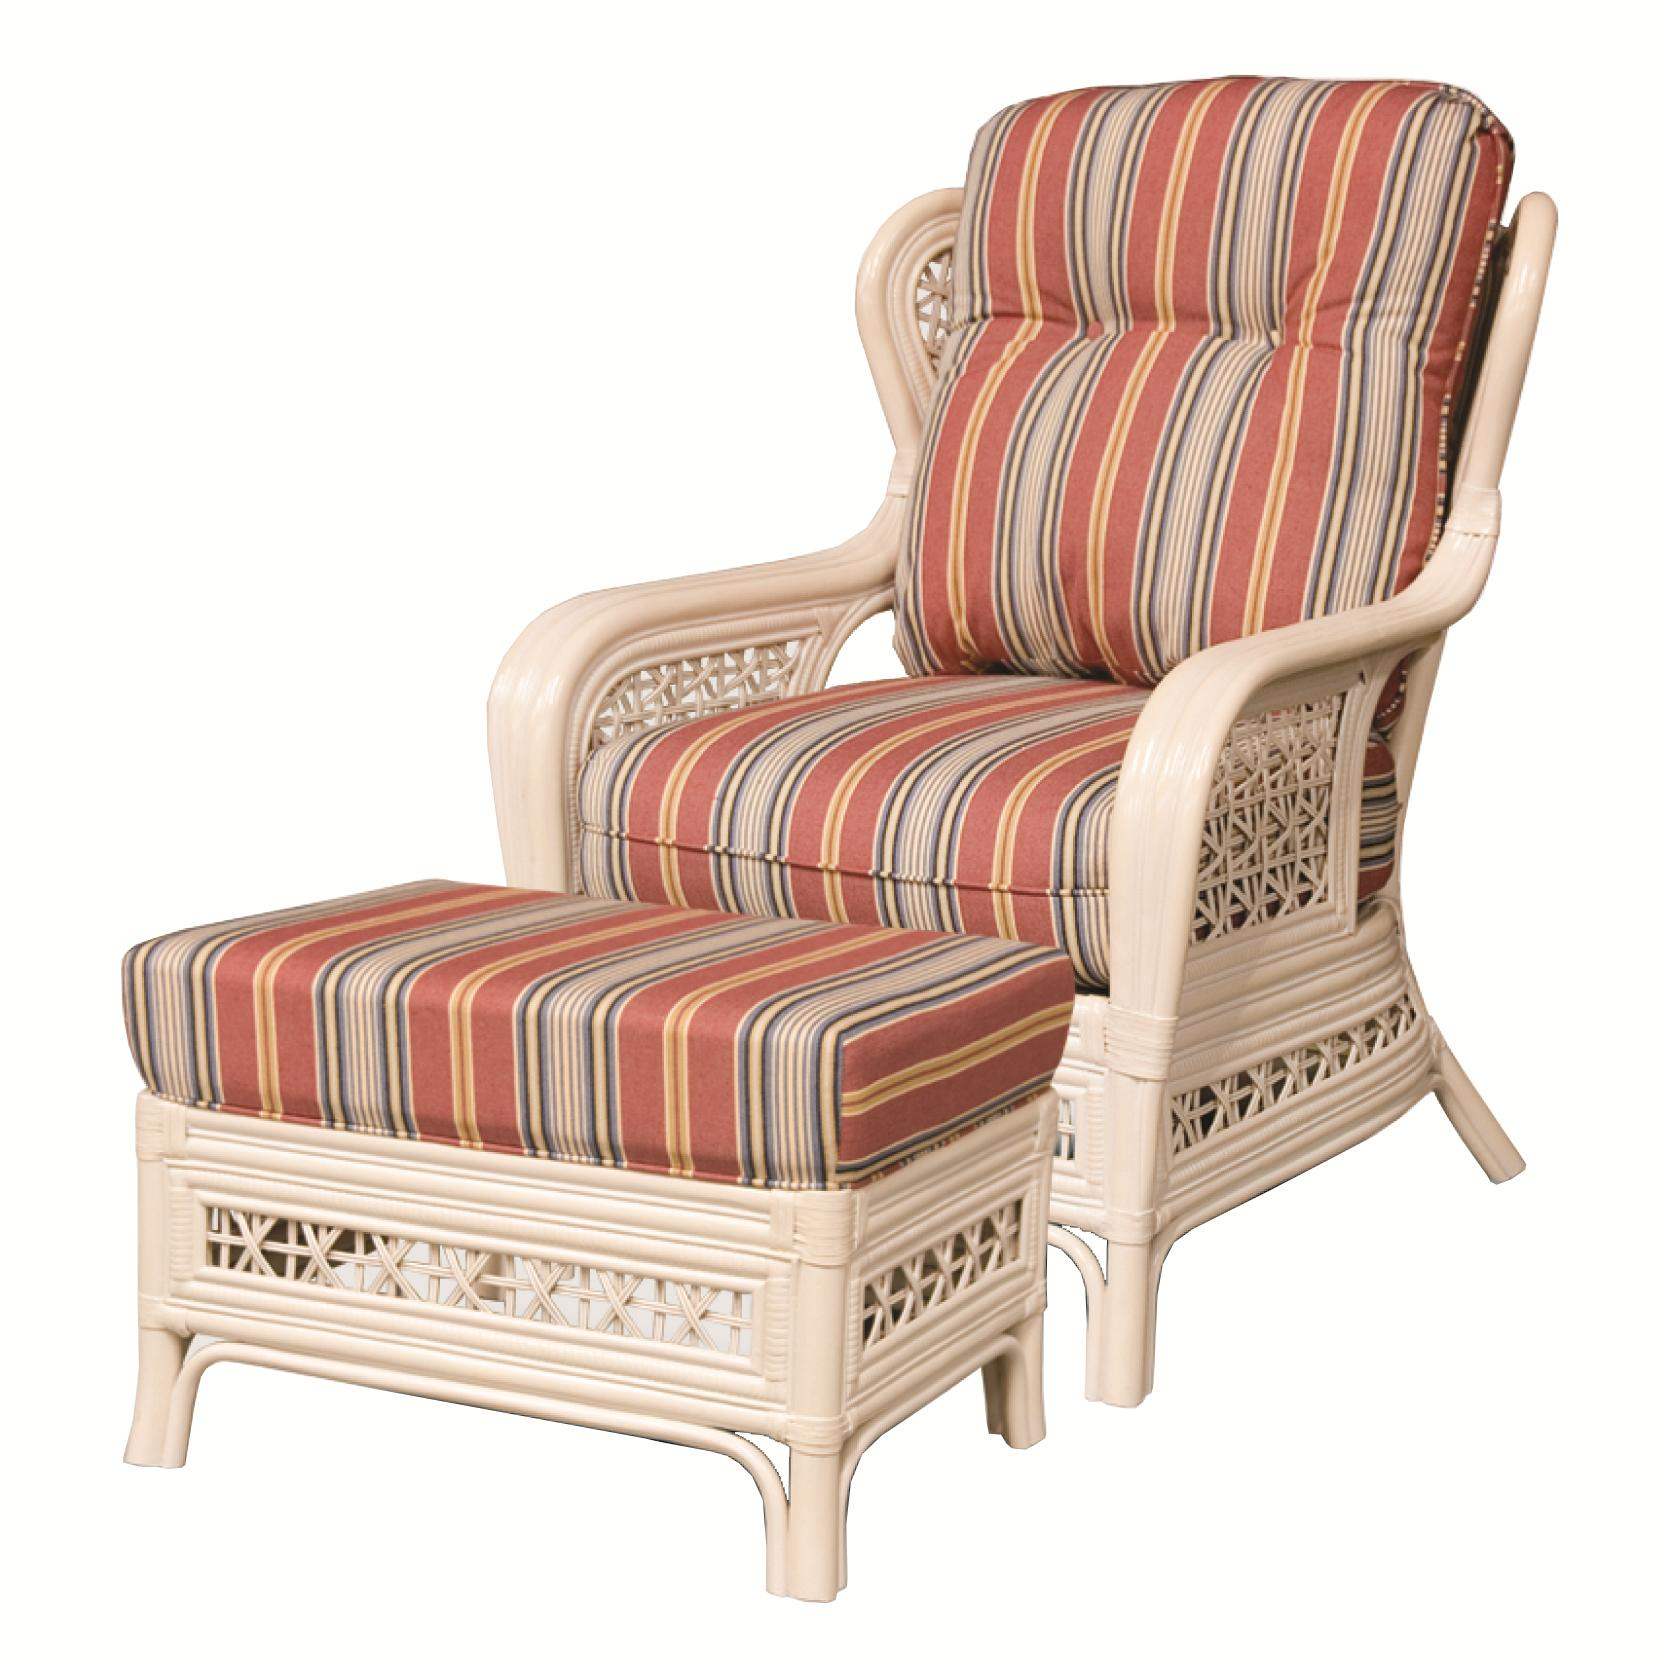 341 Collection Wicker Rattan Chair and Ottoman by Capris Furniture at Esprit Decor Home Furnishings